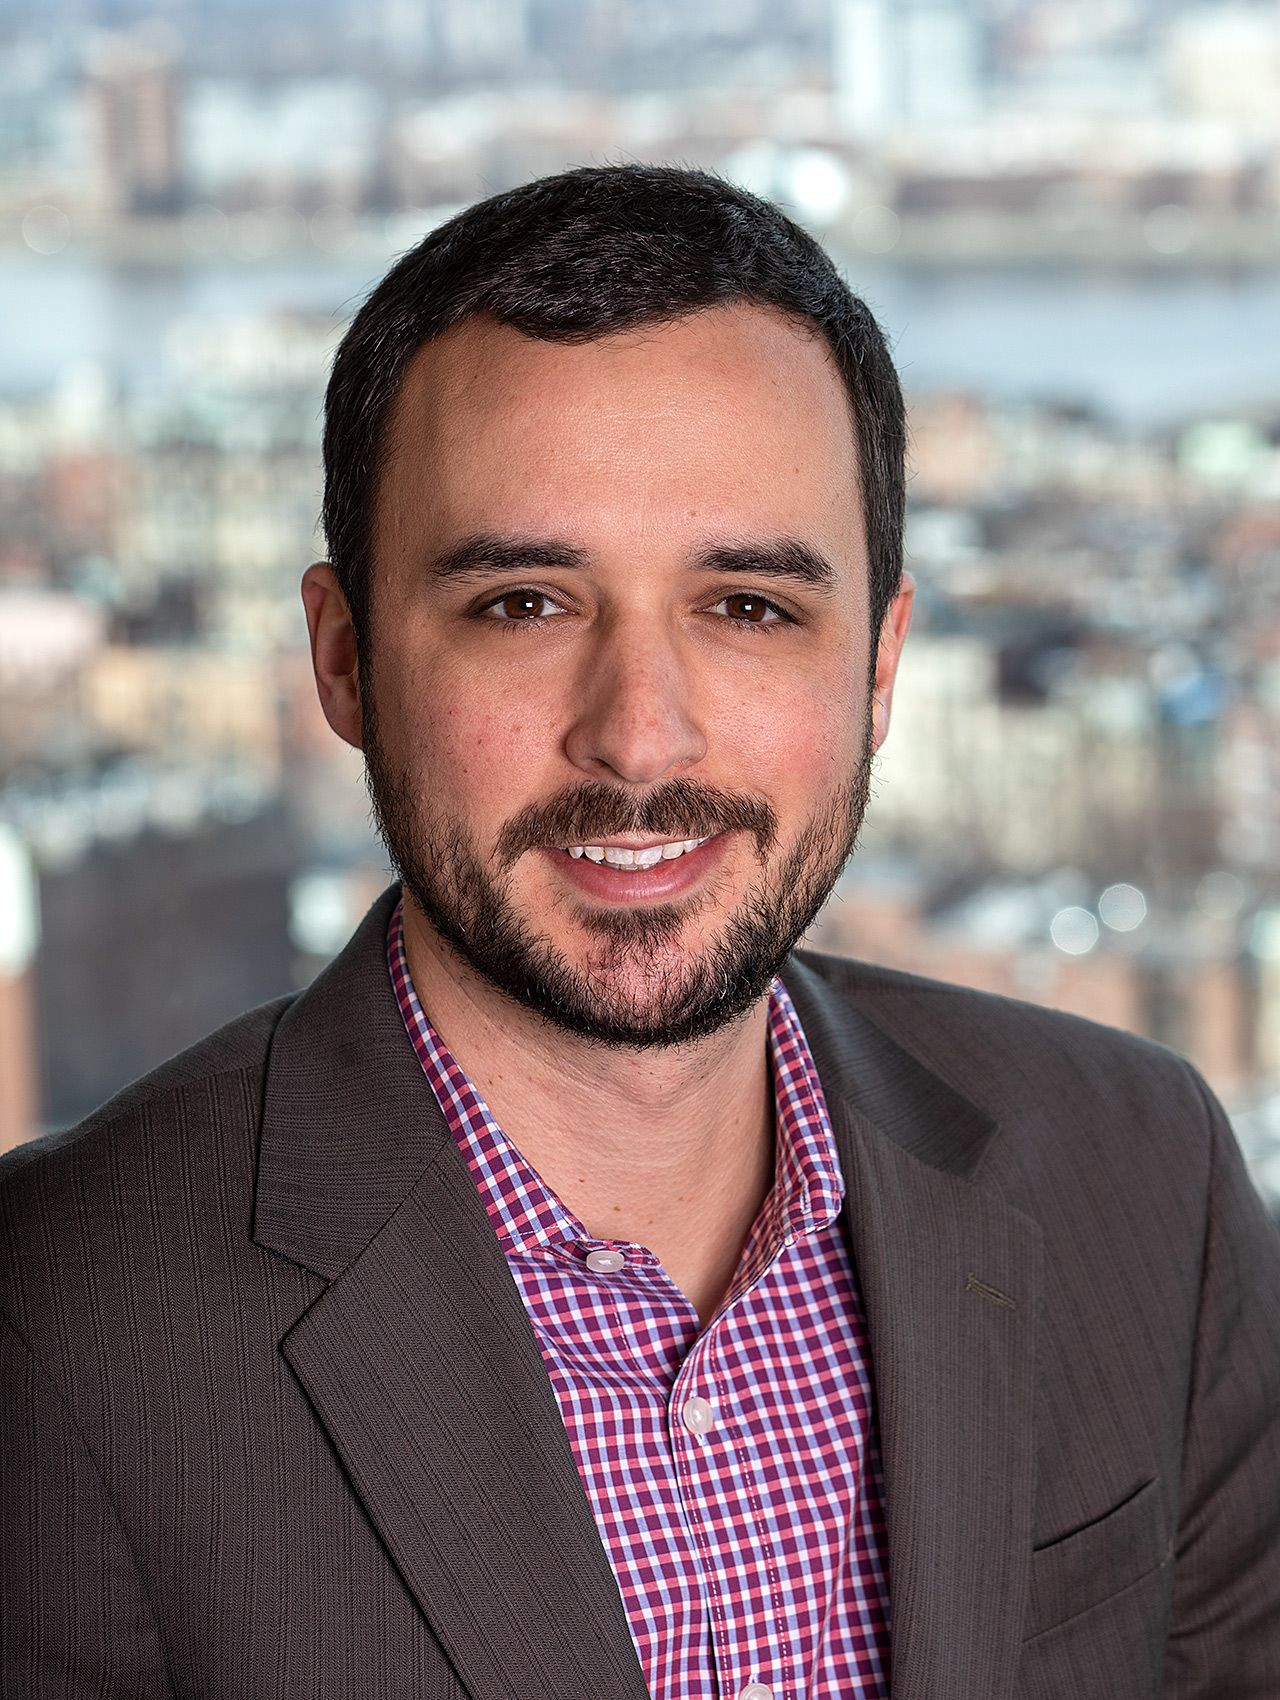 Corporate Headshot with Cityscape of Boston